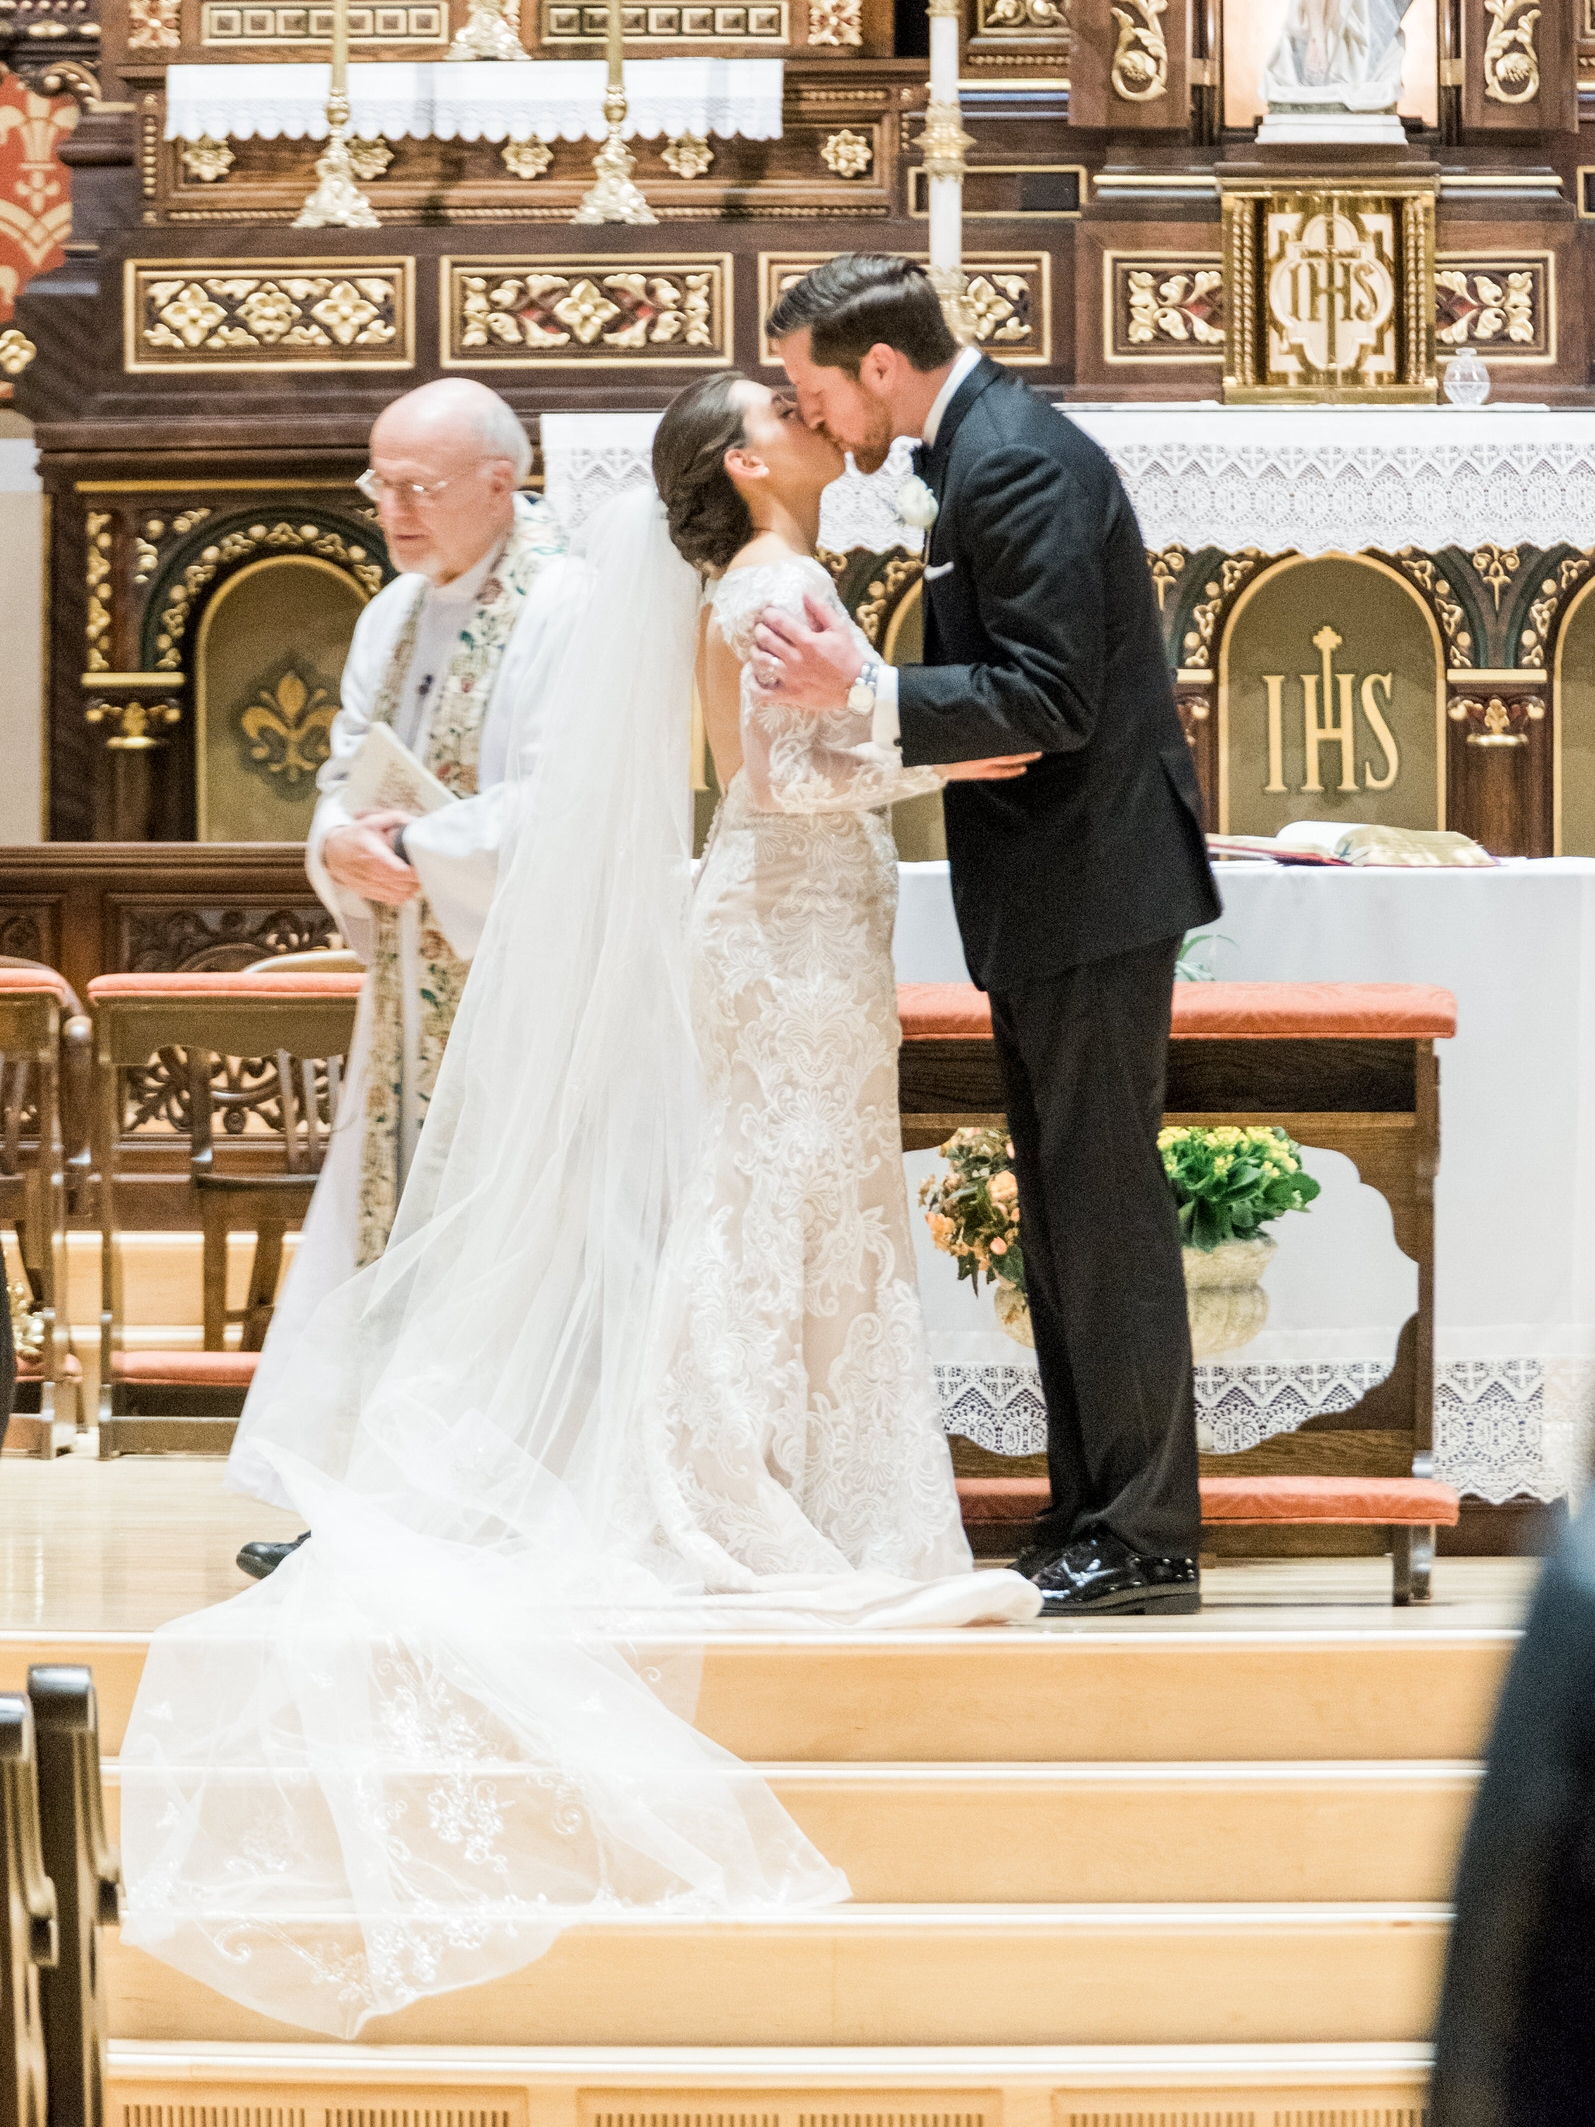 Wedding at Our Lady of the Assumption in Saint Paul, MN